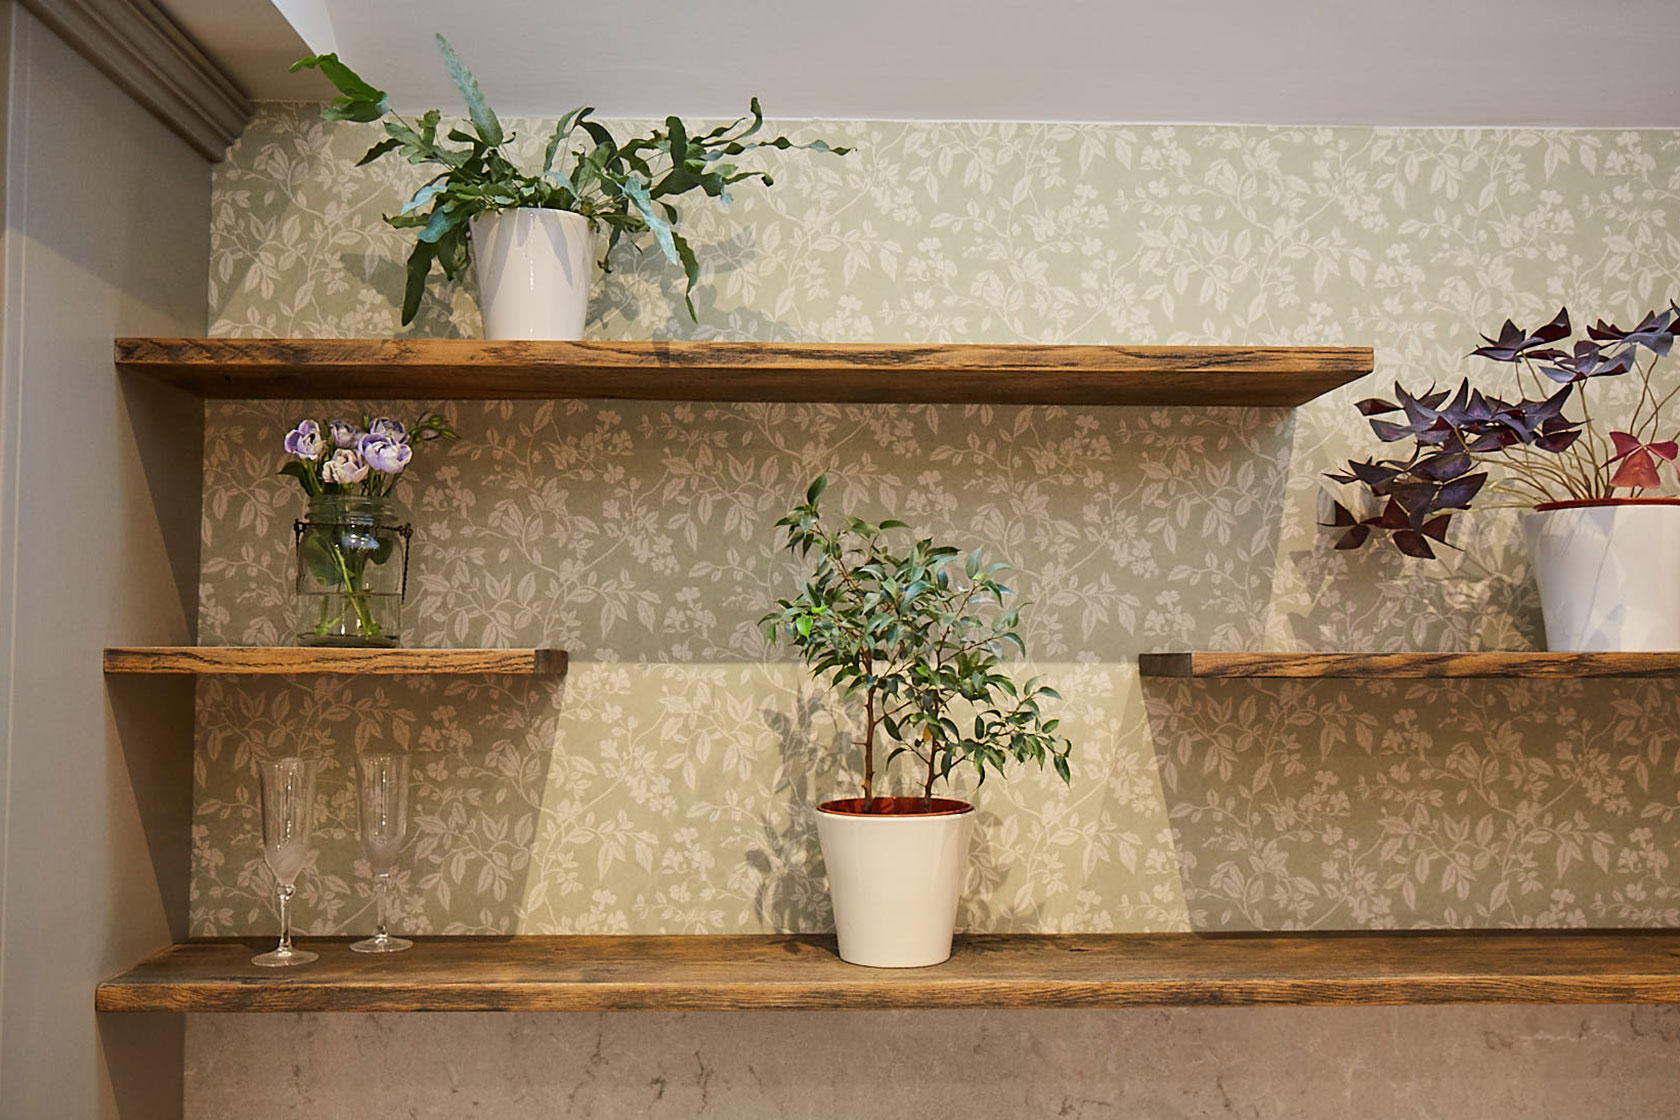 Plants sat on floating oak wood shelves with green floral back drop